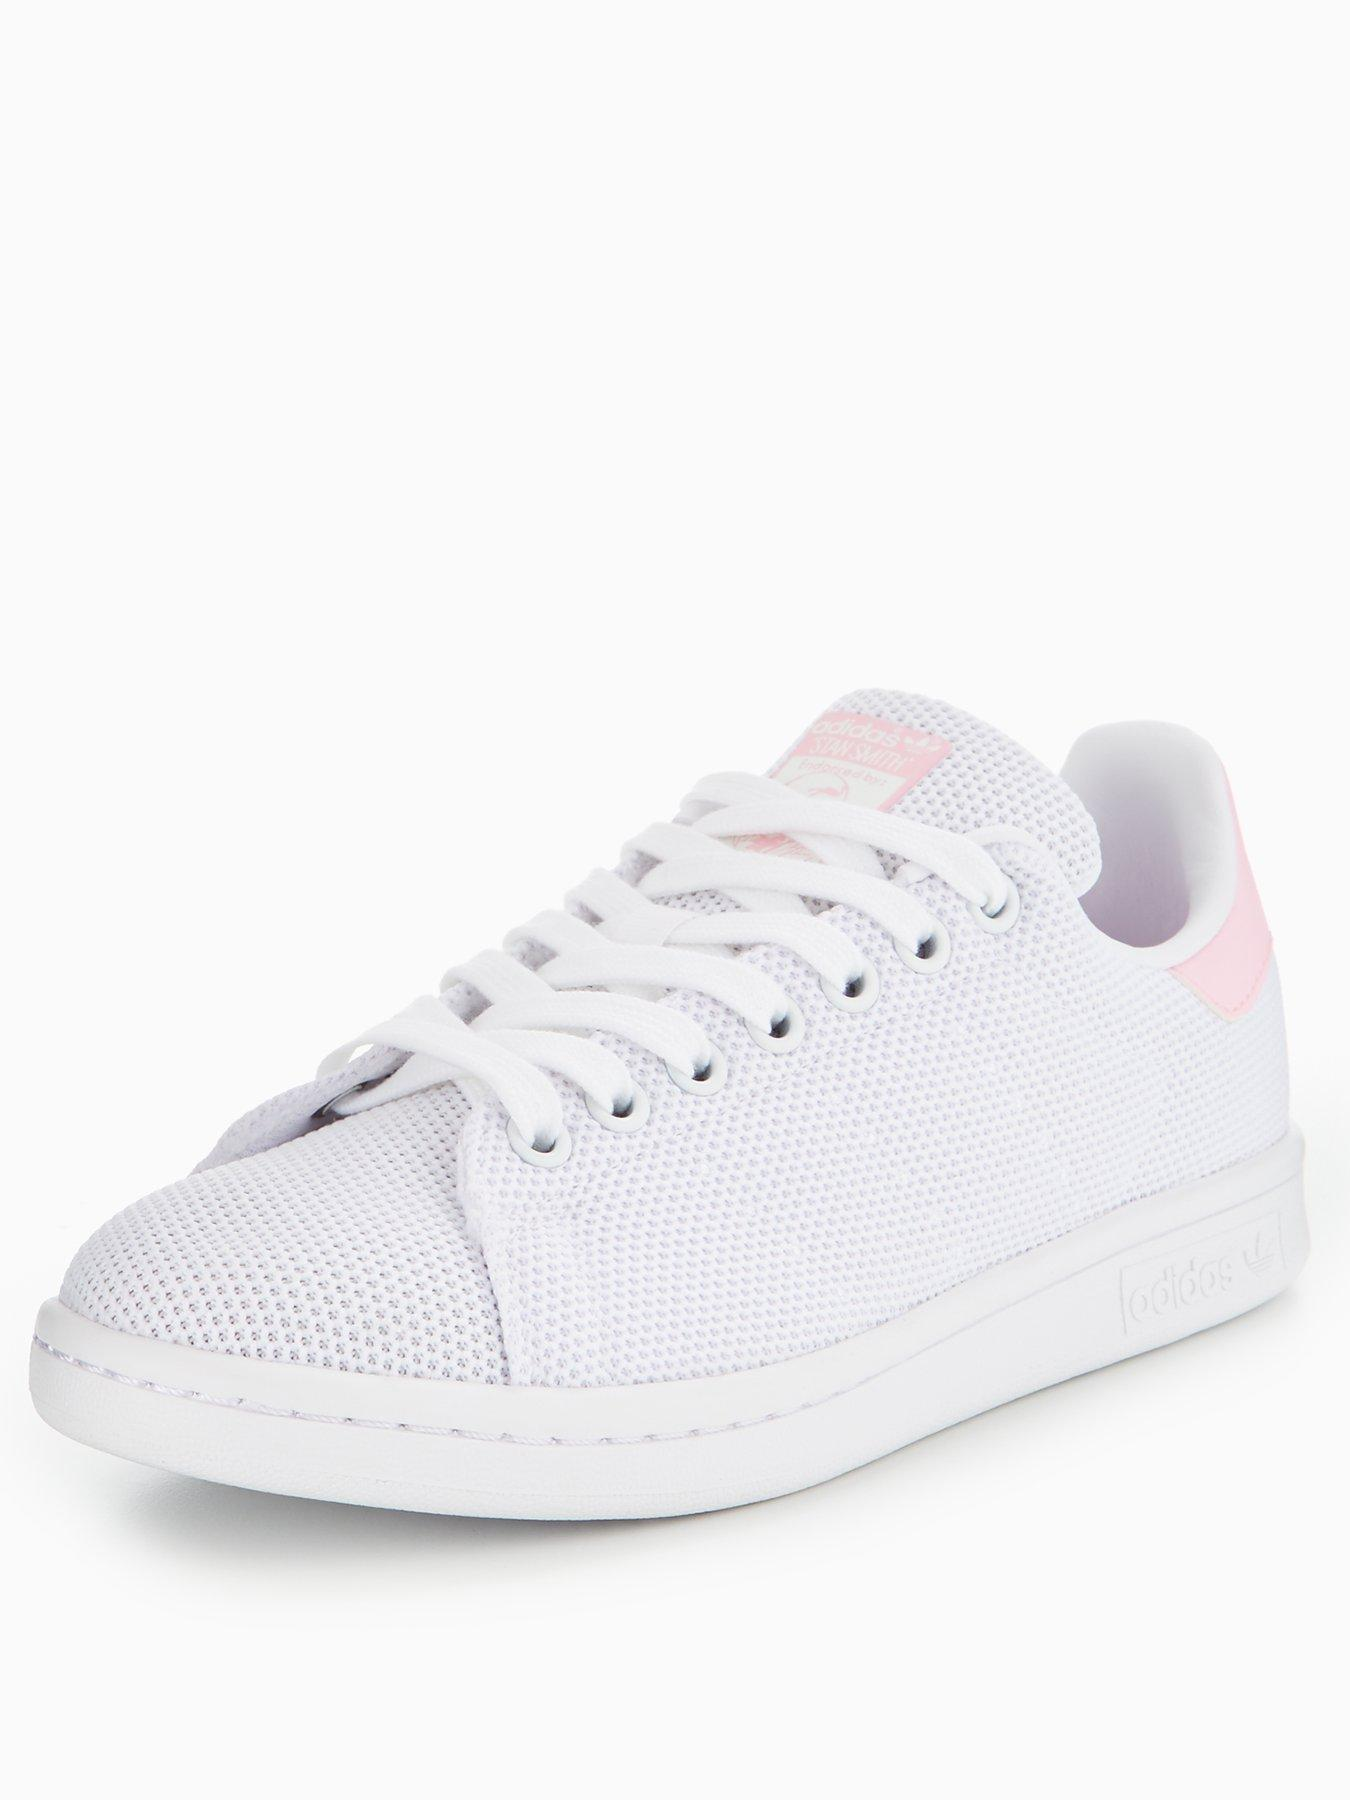 3097ae3a4fb7 ... inexpensive adidas originals stan smith white pink very ec0fb f1d8d